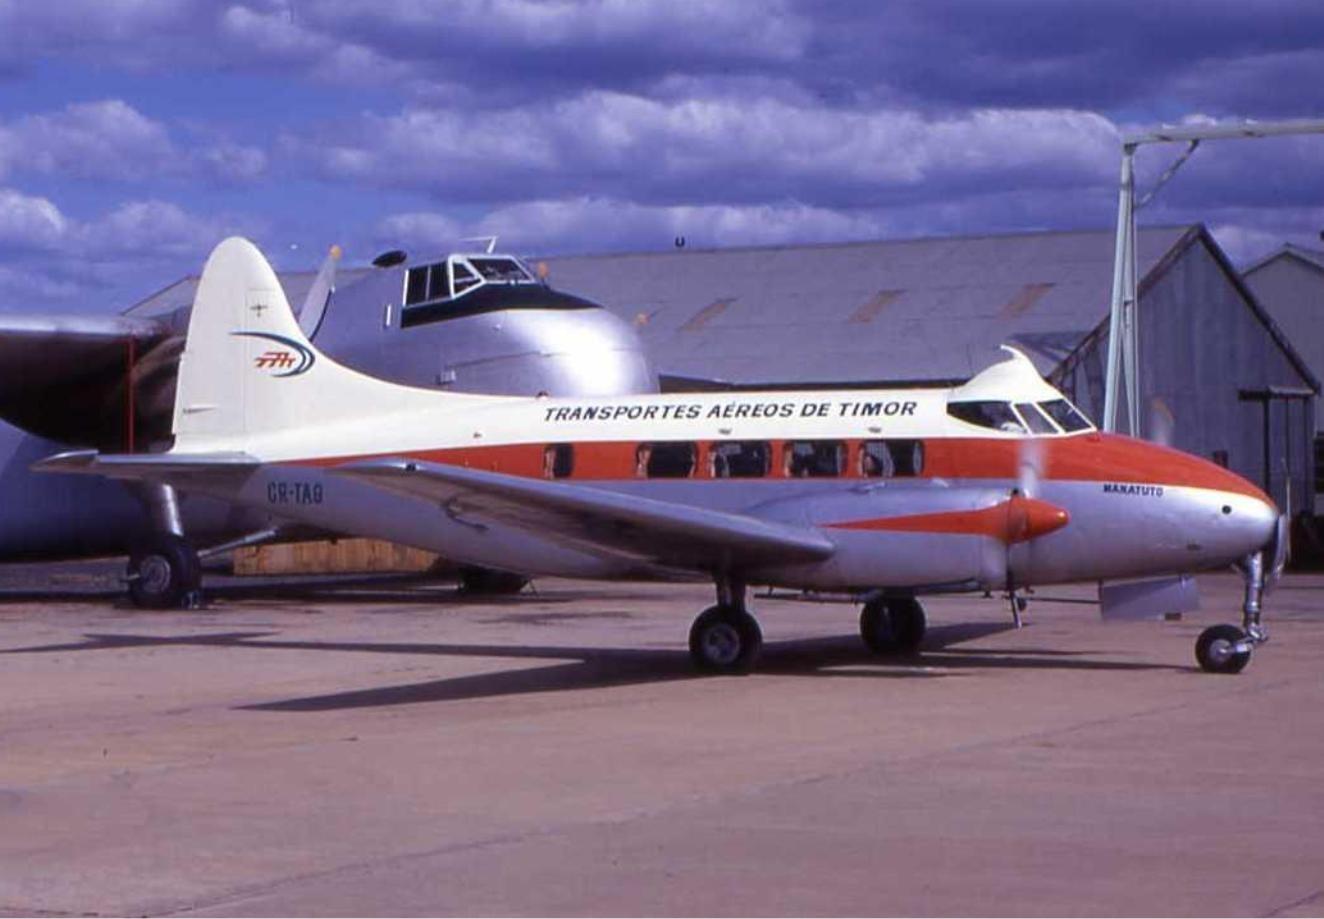 Transportes_Aereos_De_Timor_De_Havilland_DH-104_Dove_1B_Wheatley